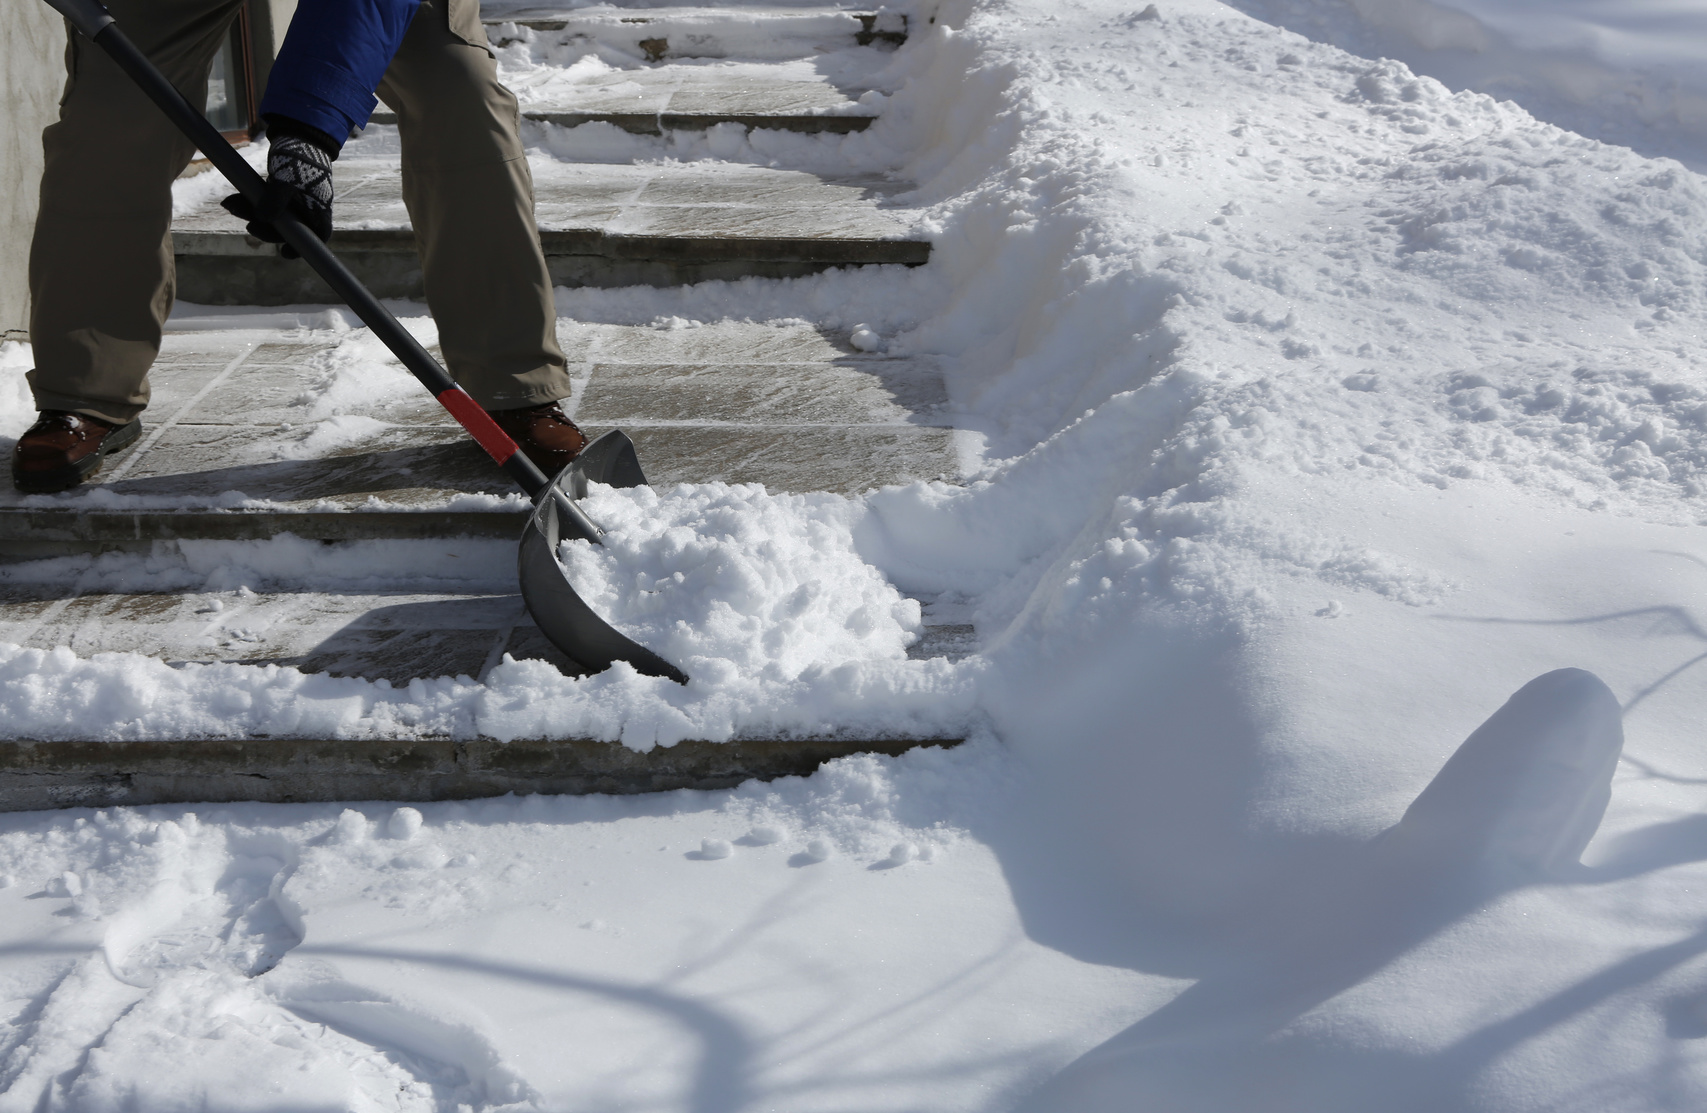 Avoiding Injury While Shoveling Snow